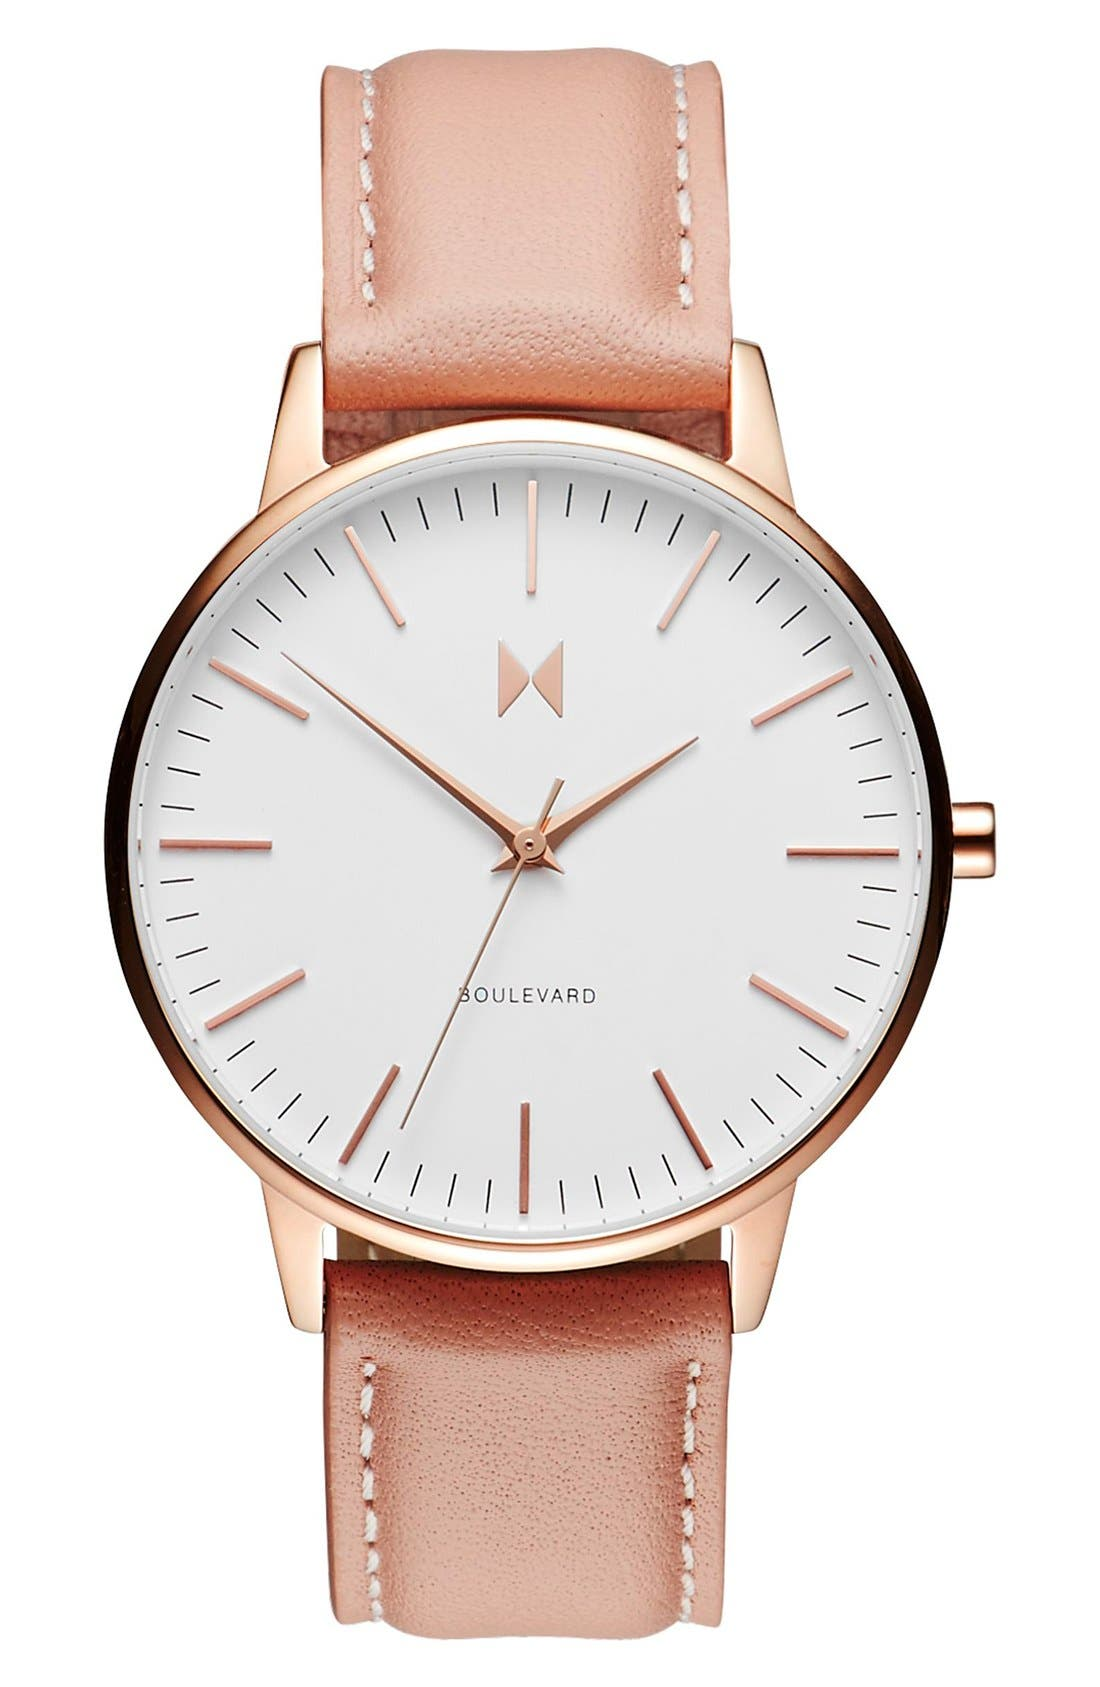 Boulevard Leather Strap Watch, 38mm, Main, color, PEACH/ WHITE/ ROSE GOLD